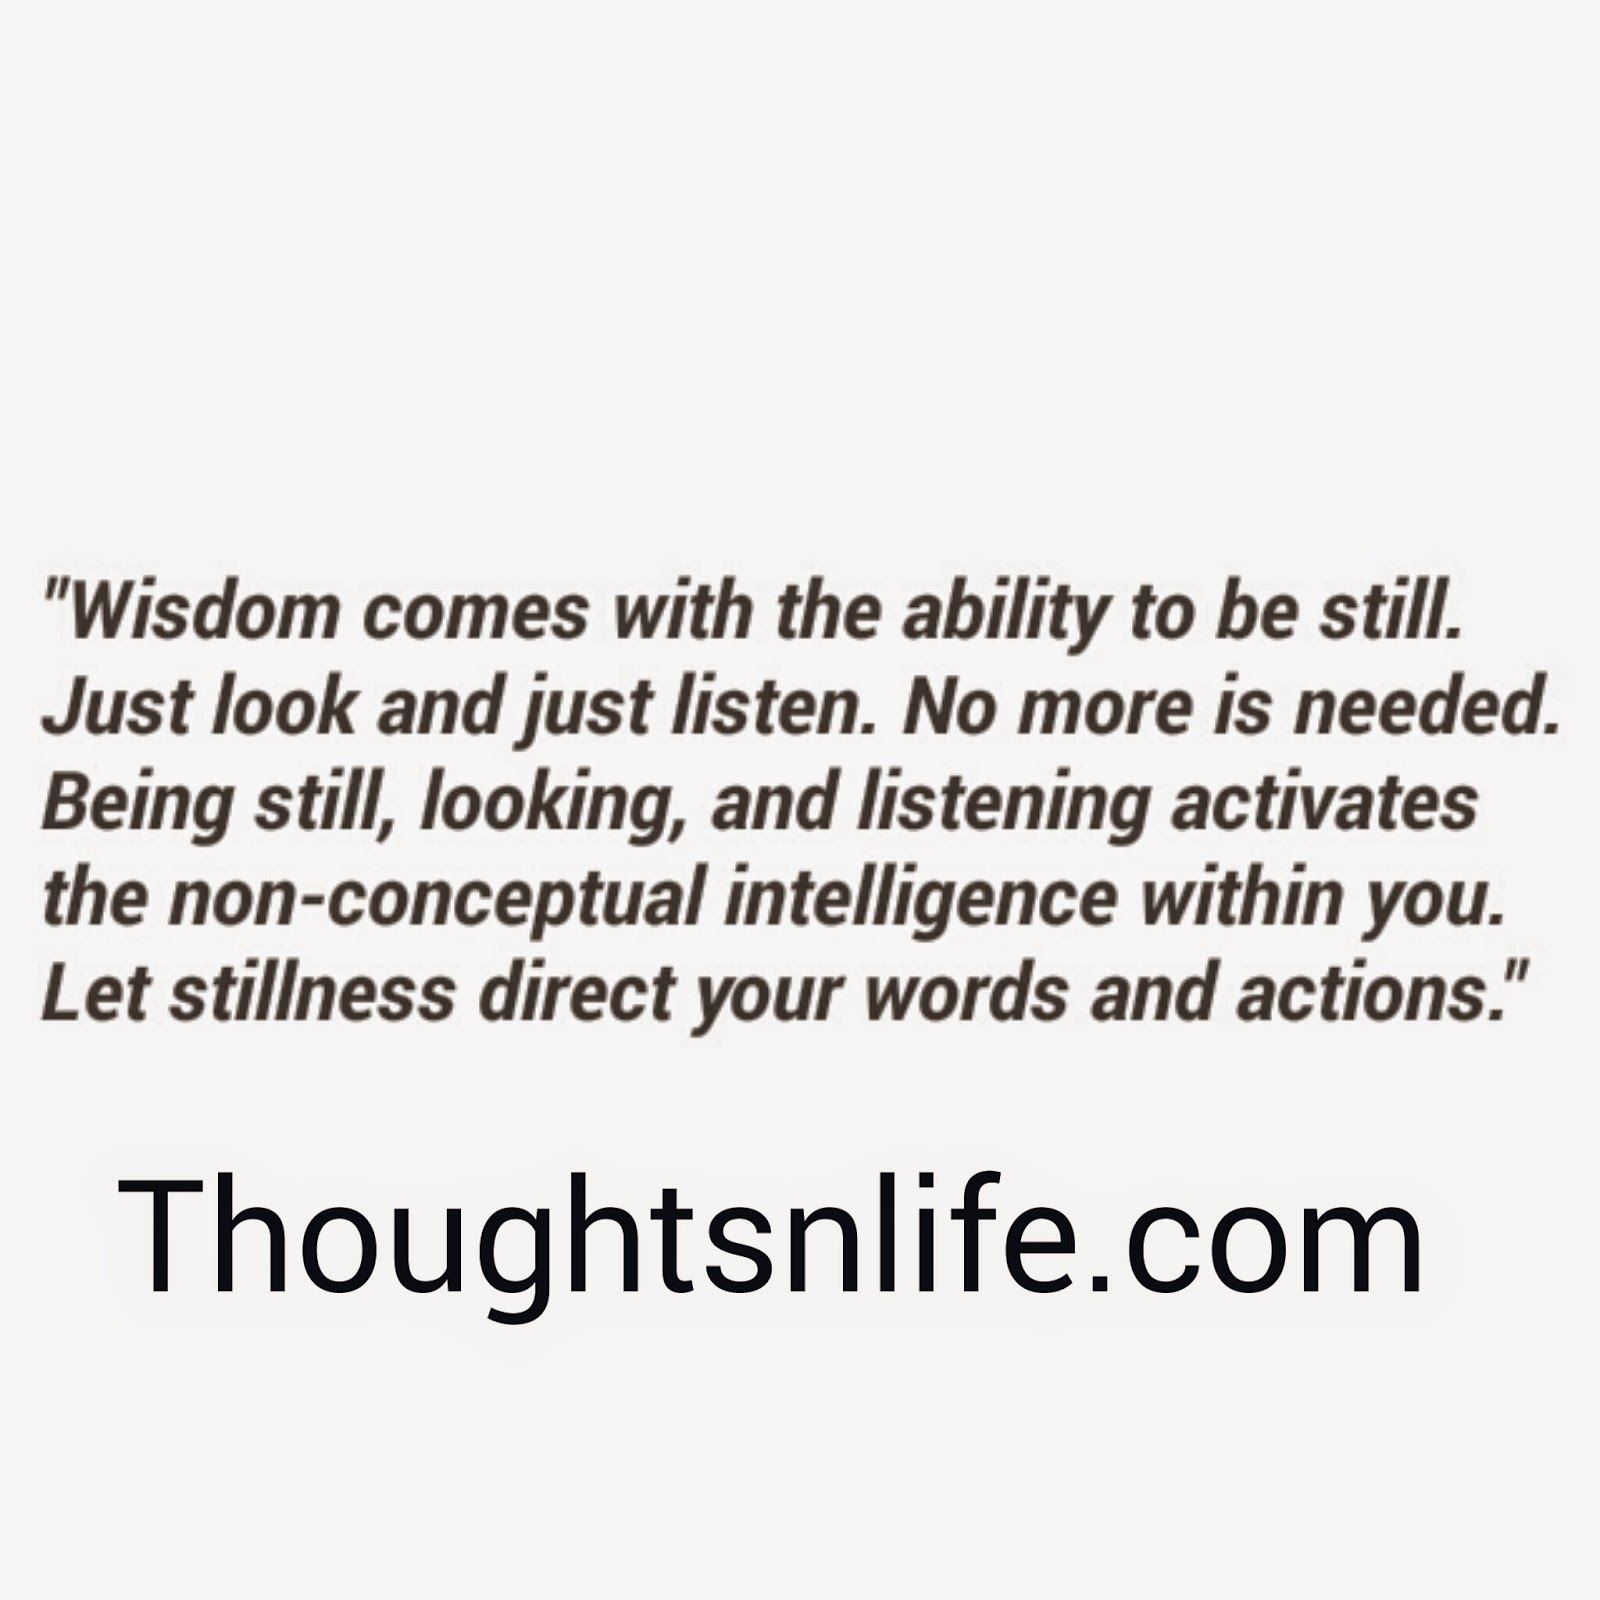 Words Of Wisdom Quotes Let Stillness Direct Your Words And Actions.